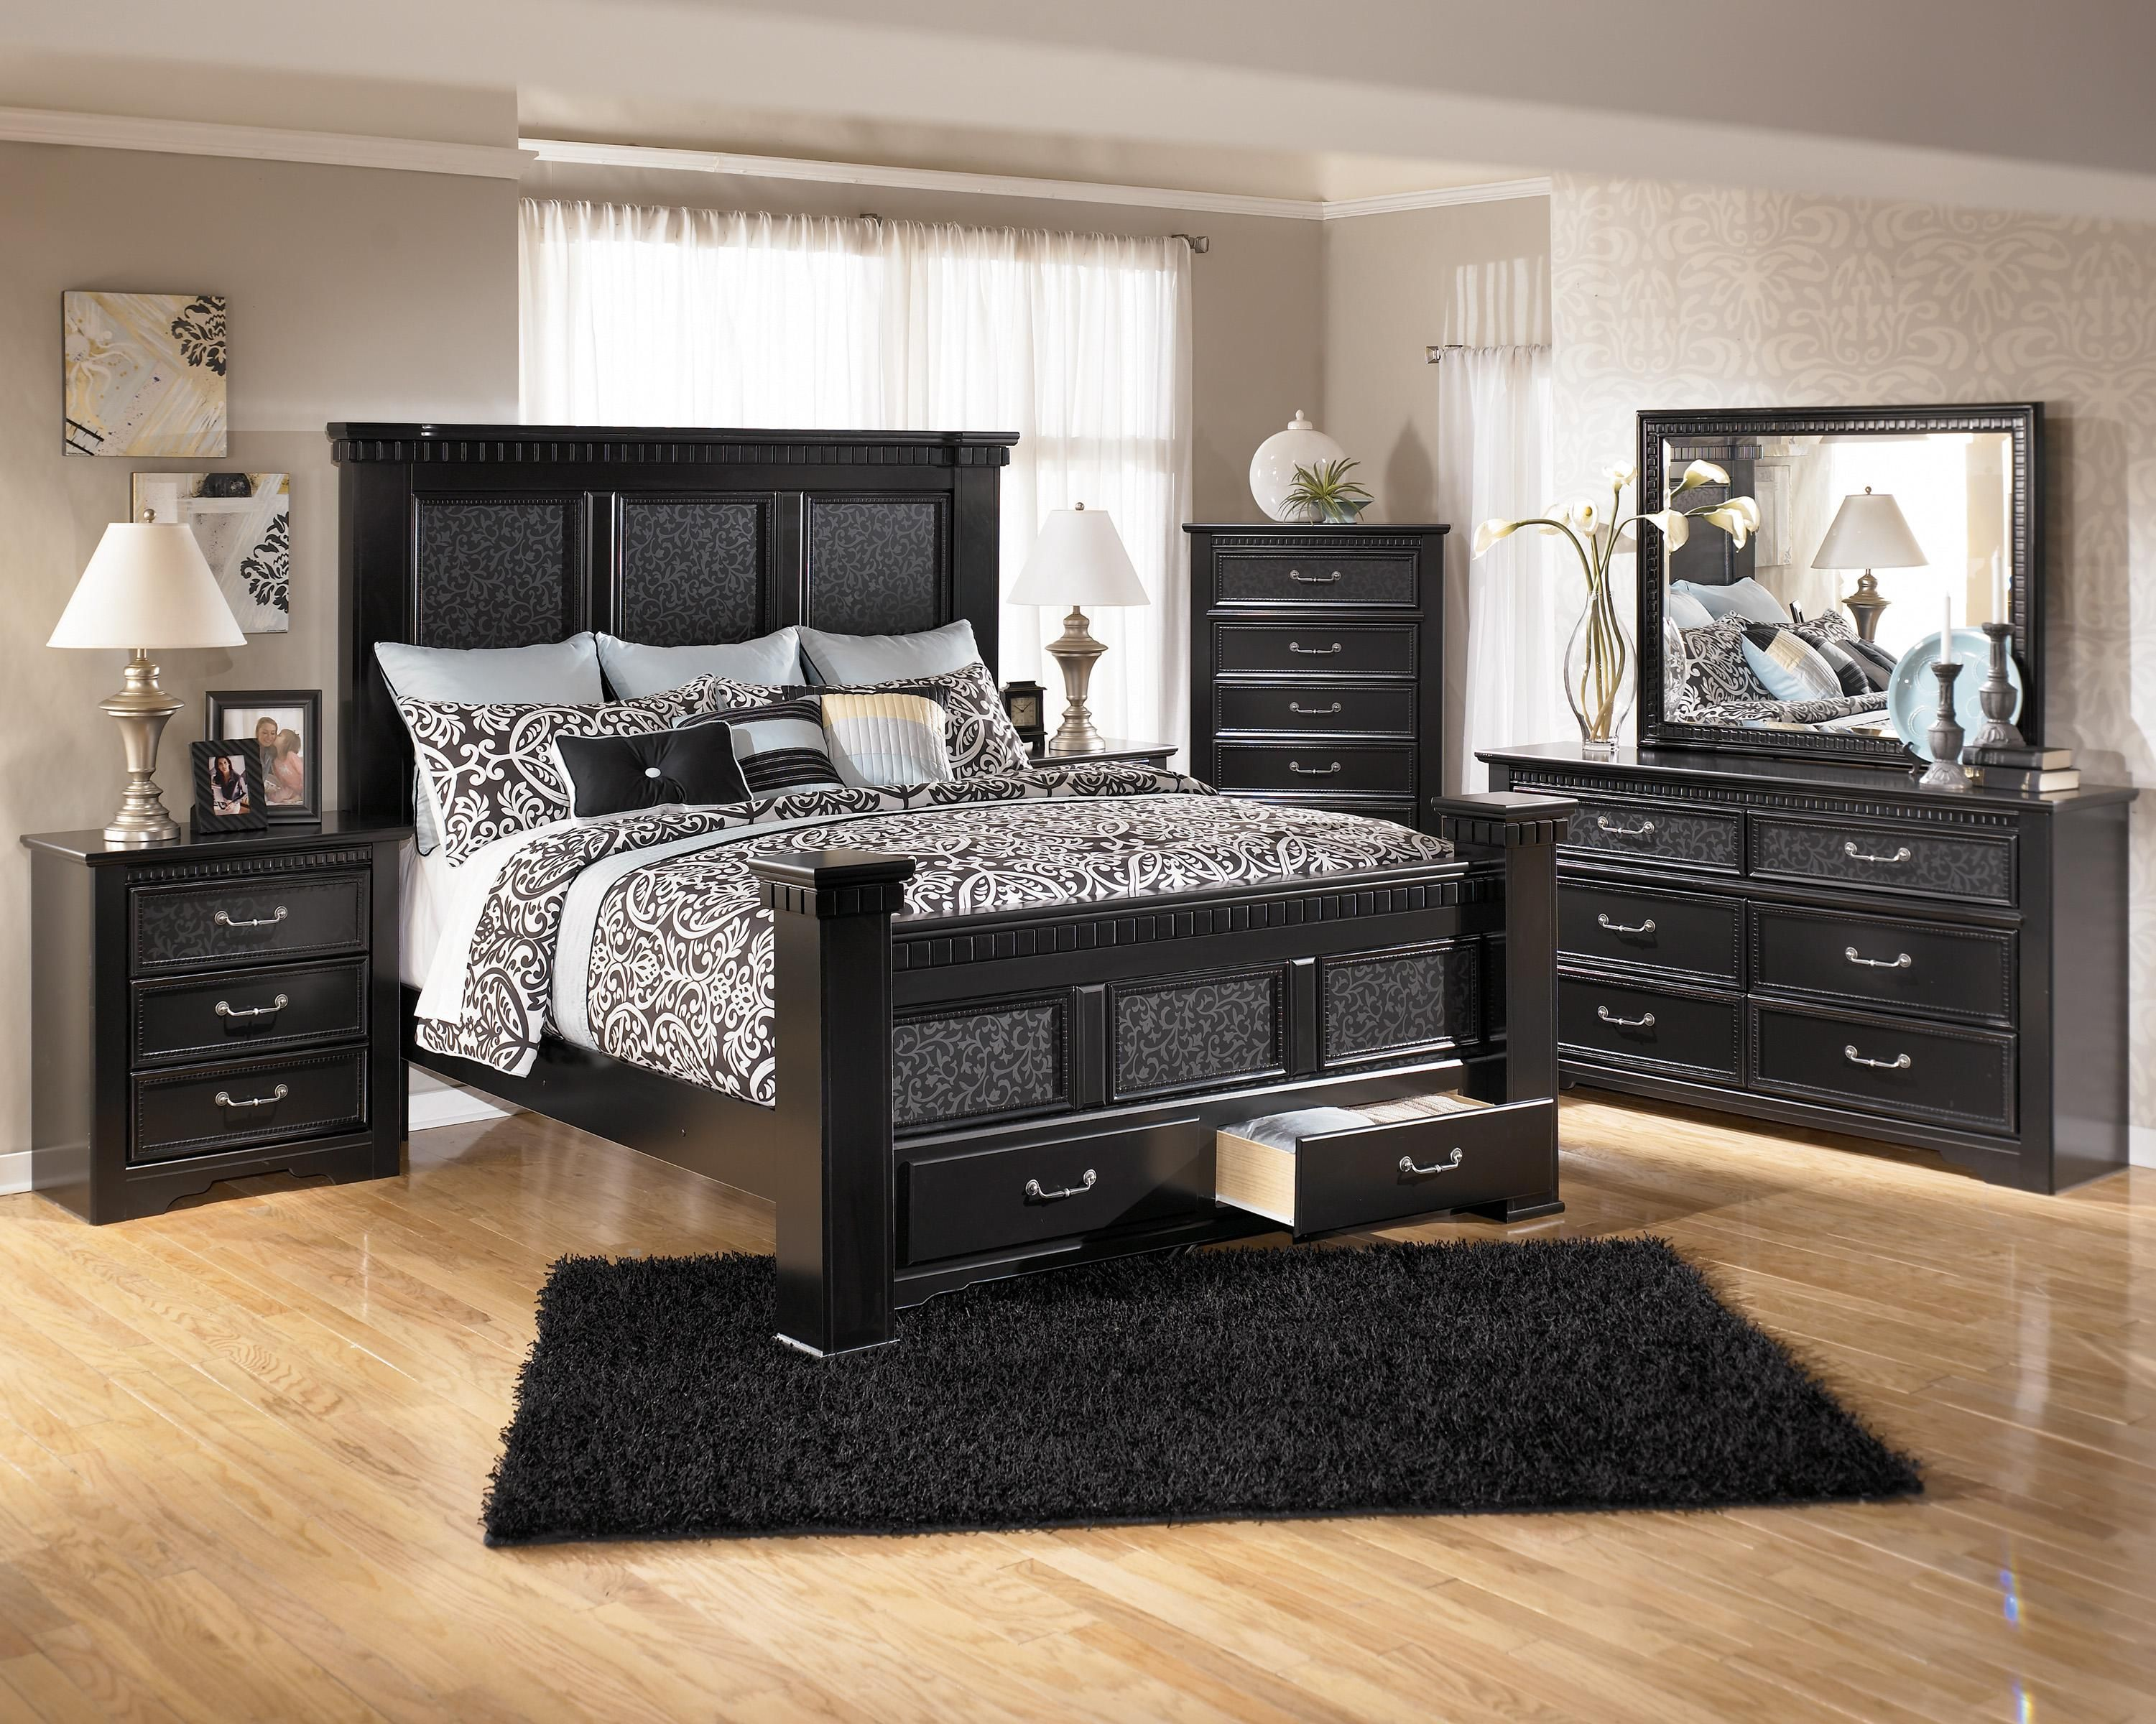 Bedroom paint ideas with black furniture - Cavallino King Mansion Poster Bed With Storage Footboard By Signature Design By Ashley Furniture Black Bedroom